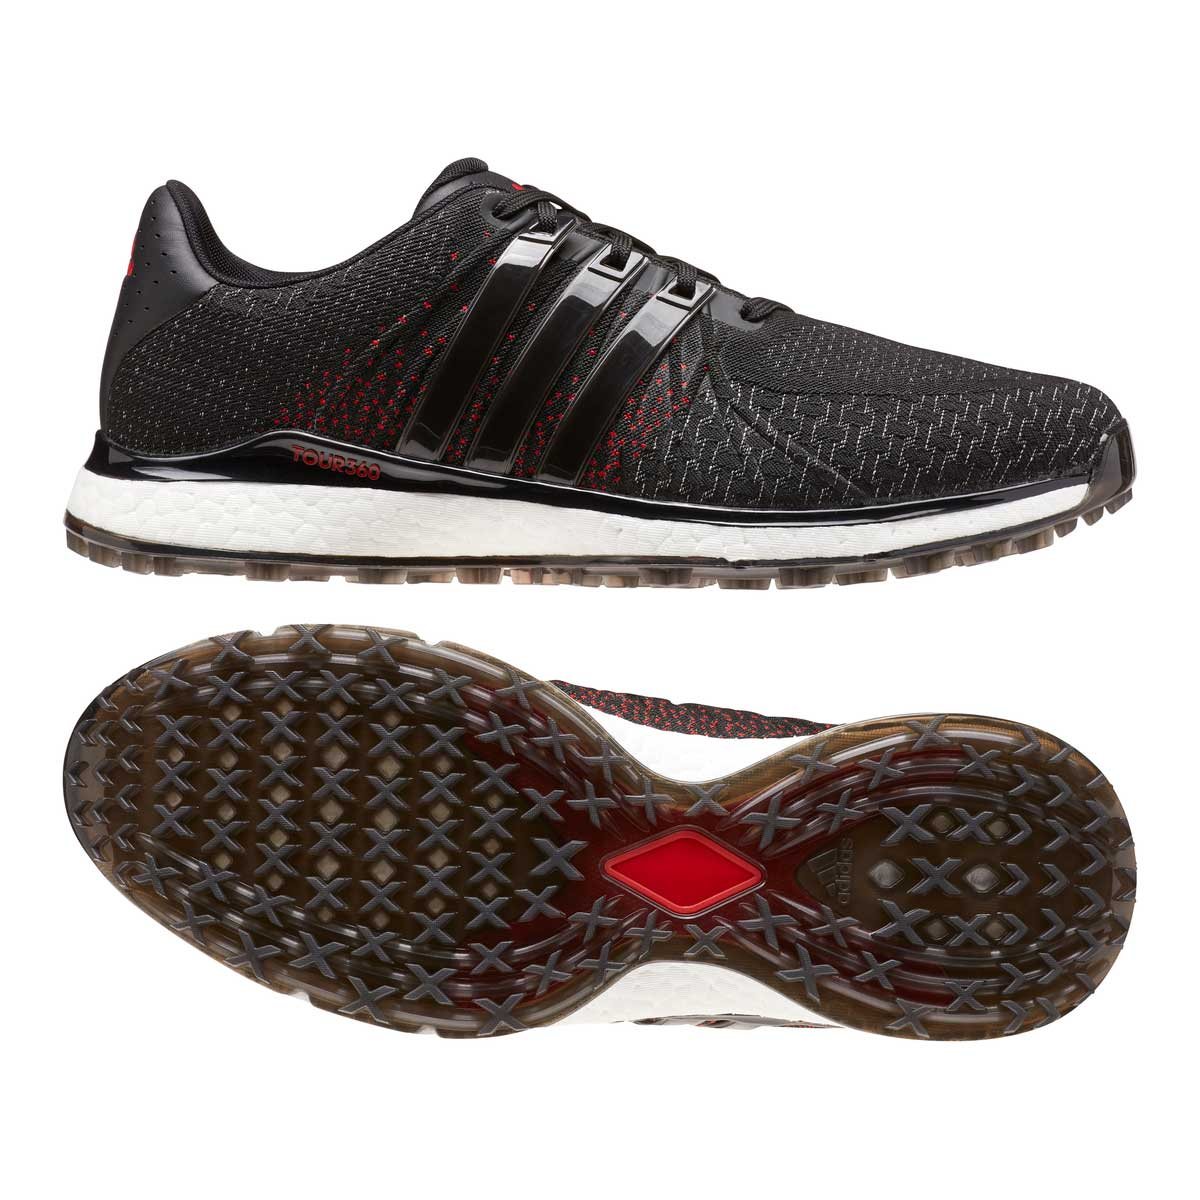 Adidas Men's TOUR360 XT-SL Black Spikeless Textile Golf Shoes